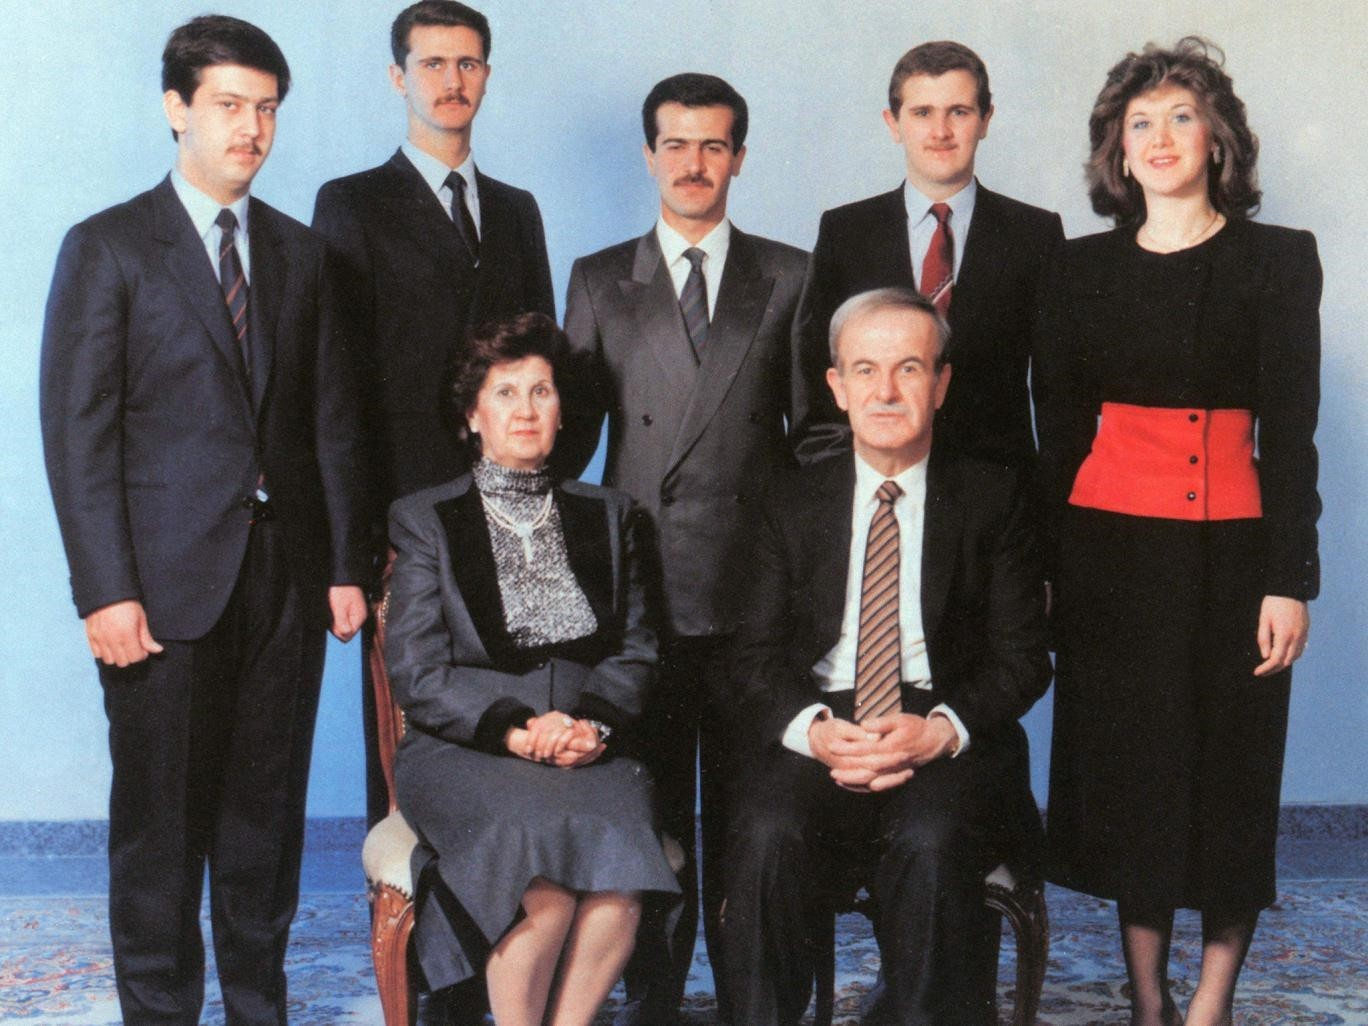 The Assad family. Hafez Assad and his wife Anisa Makhlouf. On the back row, from left to right: Maher, Bashar, Basil, Majid, and Bushra Assad.